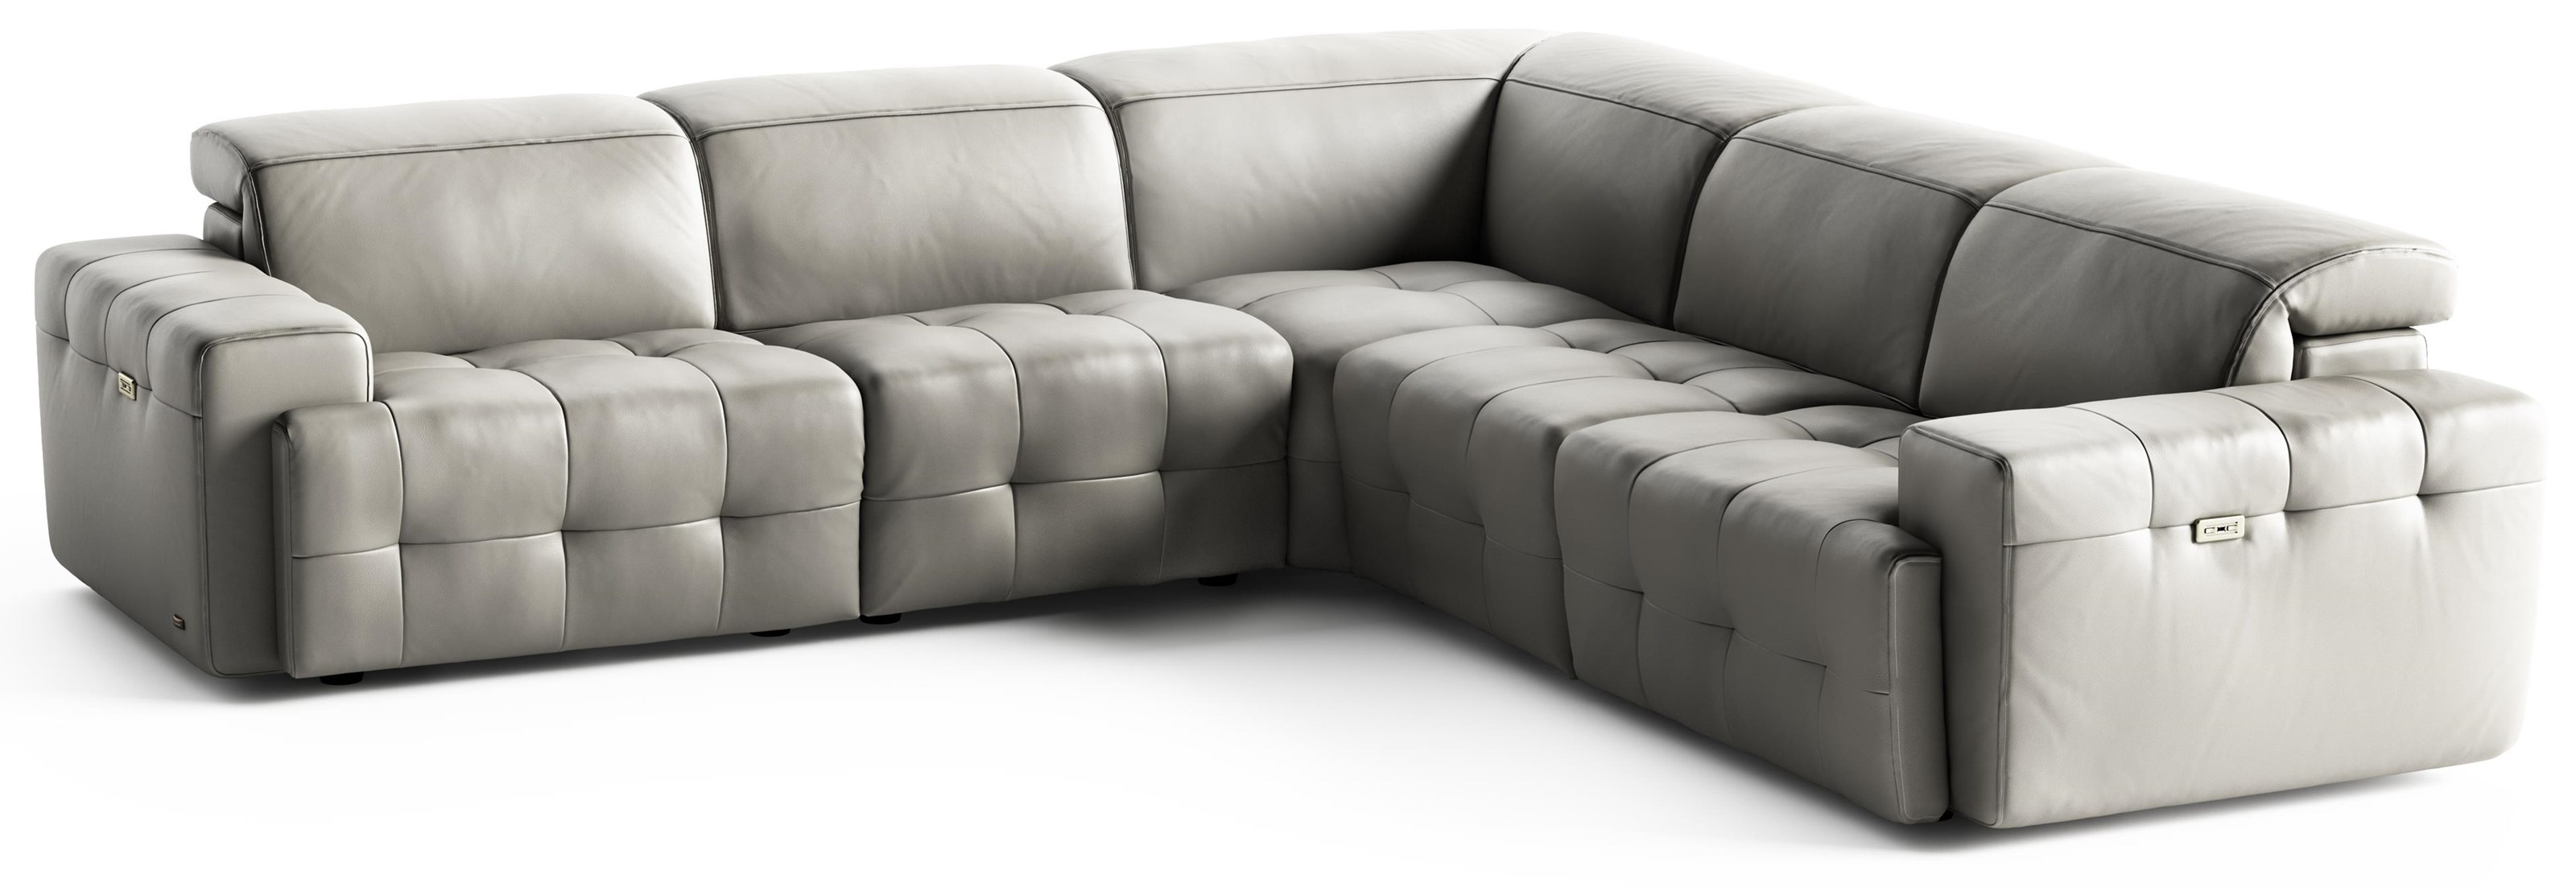 Intenso Power Reclining Leather Sectional by Natuzzi Editions at Baer's Furniture